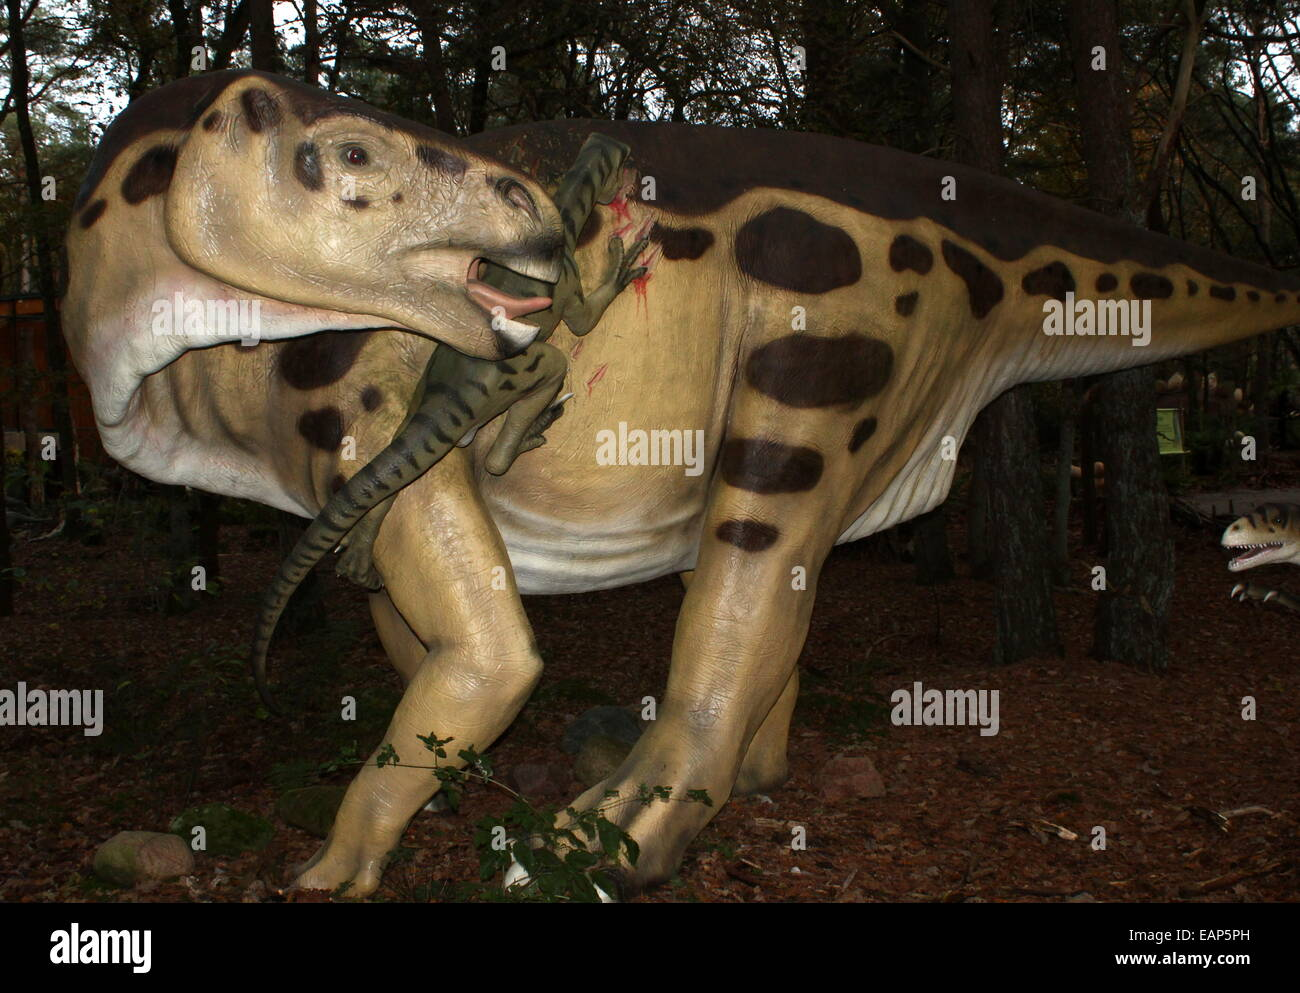 Predatory Deinonychus attacking an Iguanodon (Cretaceous era) Lifelike dino statues at  Dinopark Amersfoort Zoo, - Stock Image